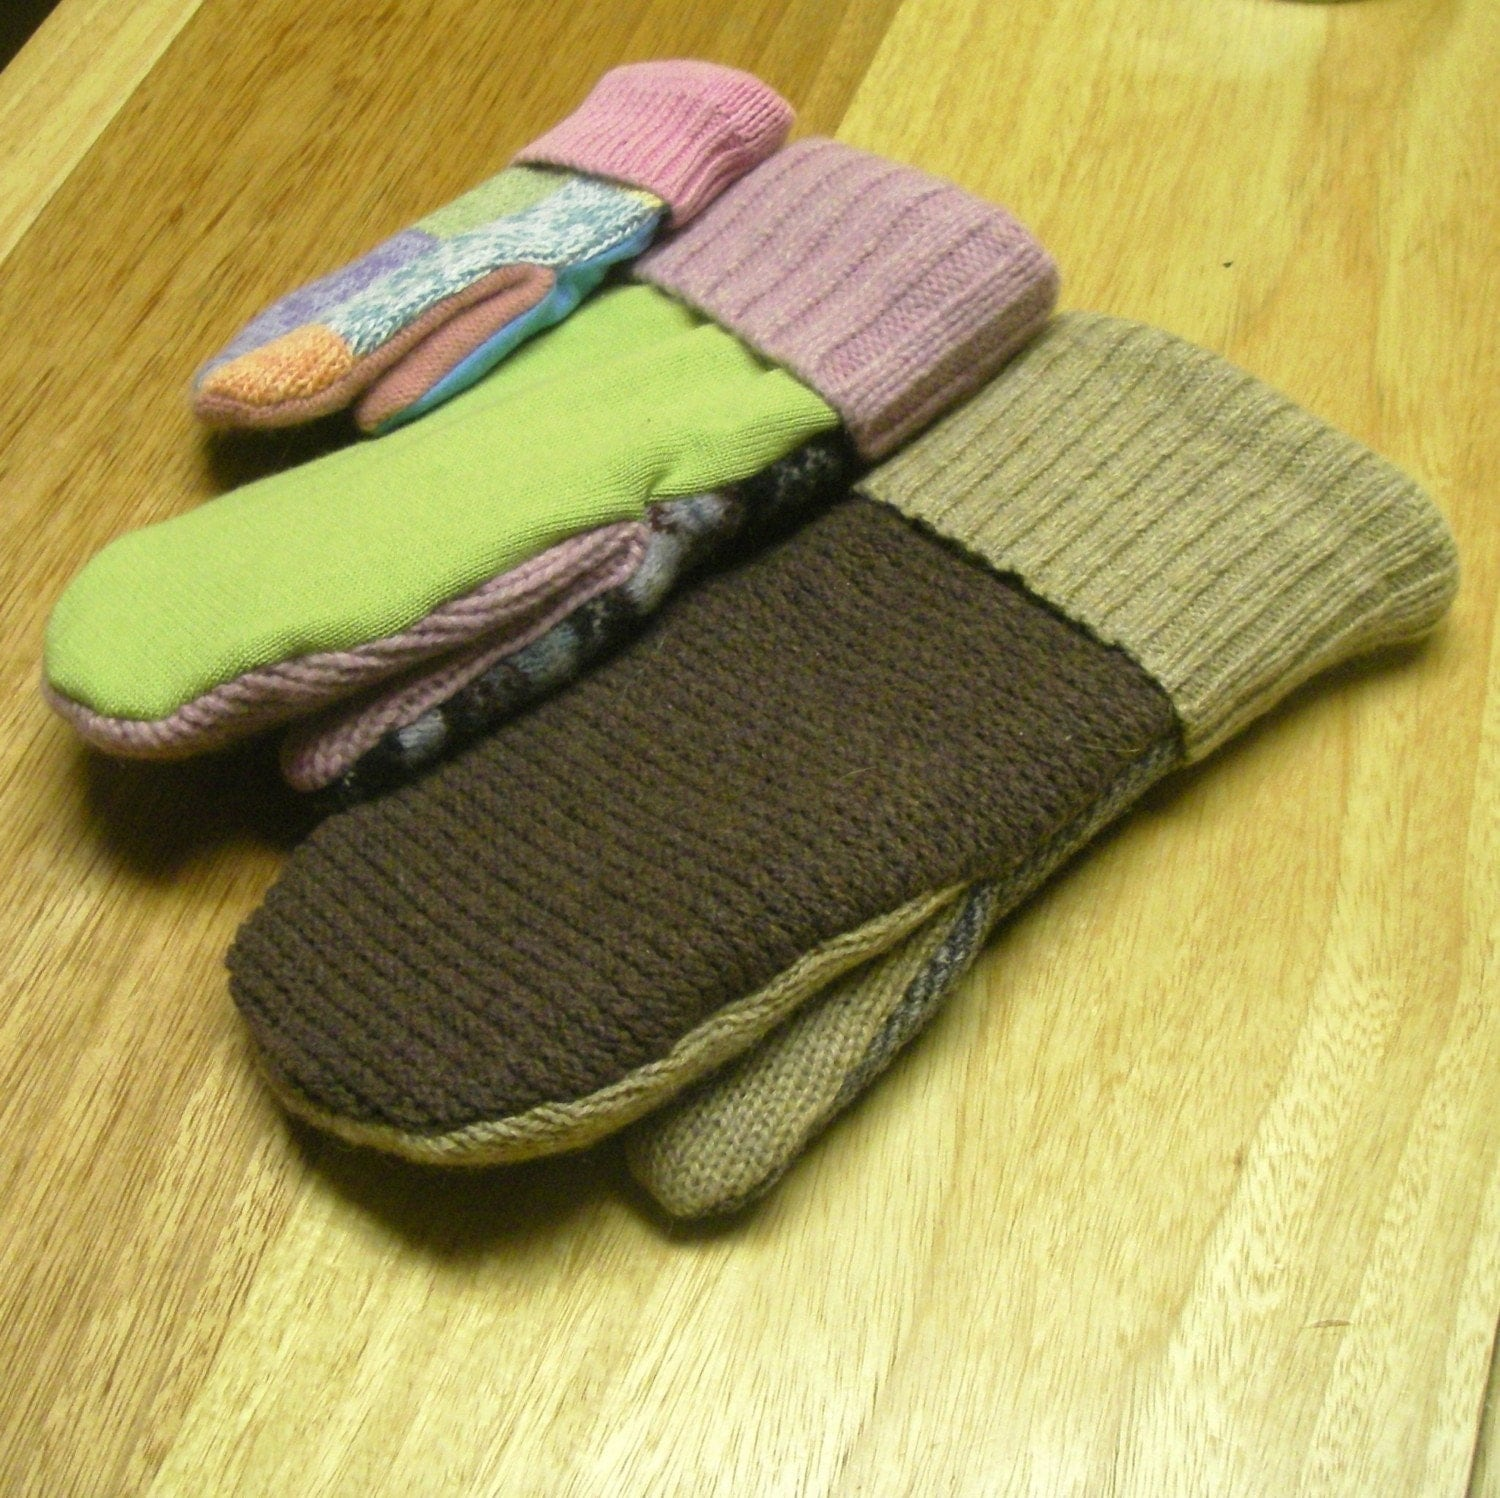 6 Free Knitting Patterns for Mittens | FaveCrafts.com